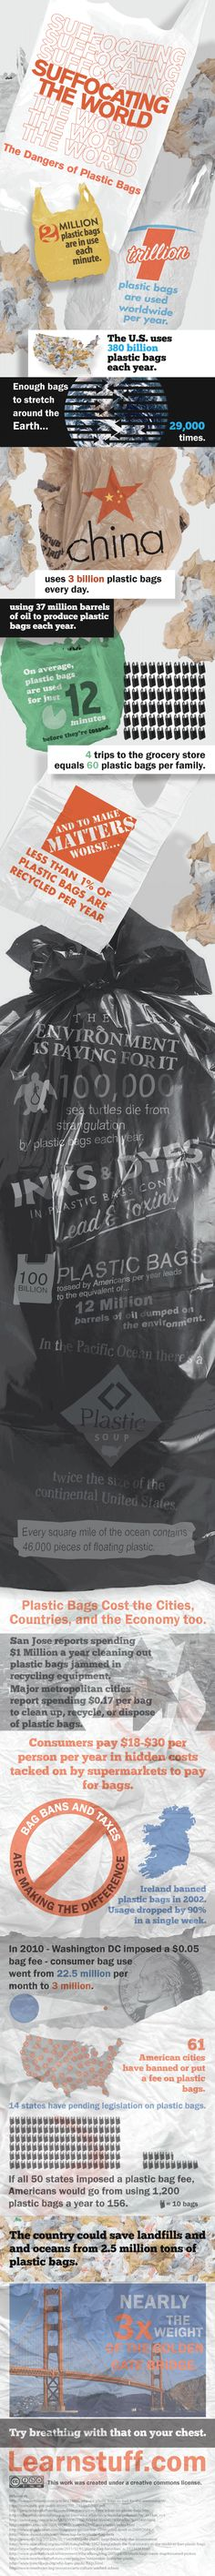 Don't take plastic bags every time you shop at the supermarket....  If you must use plastic bags,  always choose degradables,